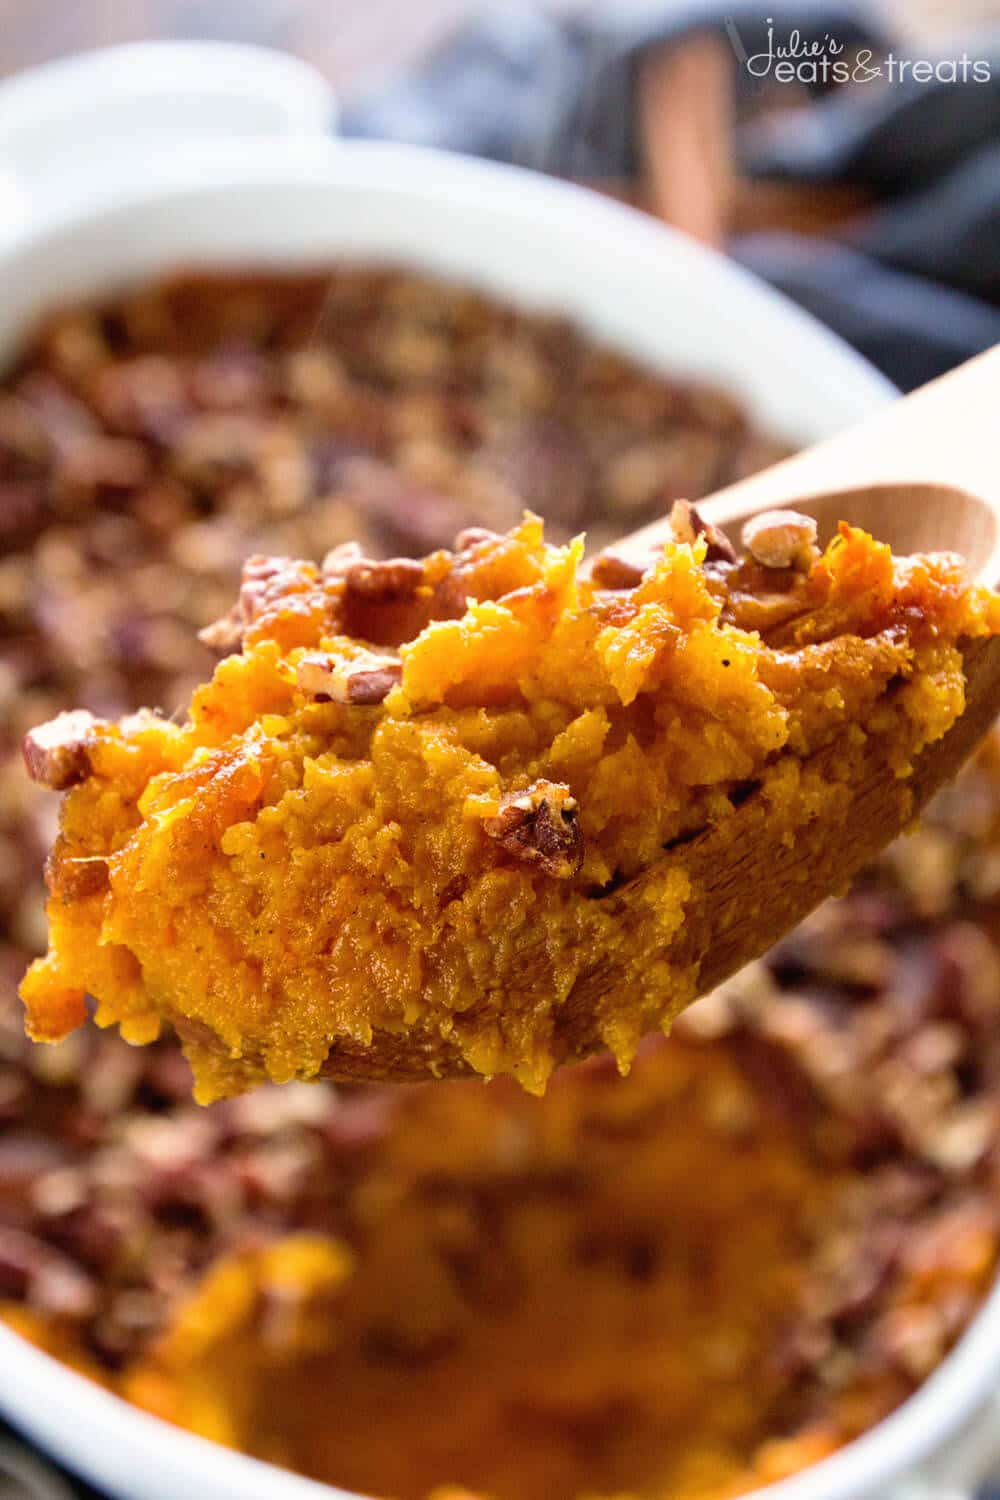 Light Sweet Potato Casserole ~ This Delicious Traditional Sweet Potato Casserole is Lightened Up for You! Loaded with Sweet Potatoes, Toasted Pecans, Cinnamon and Nutmeg! Perfect for a Holiday Side Dish!